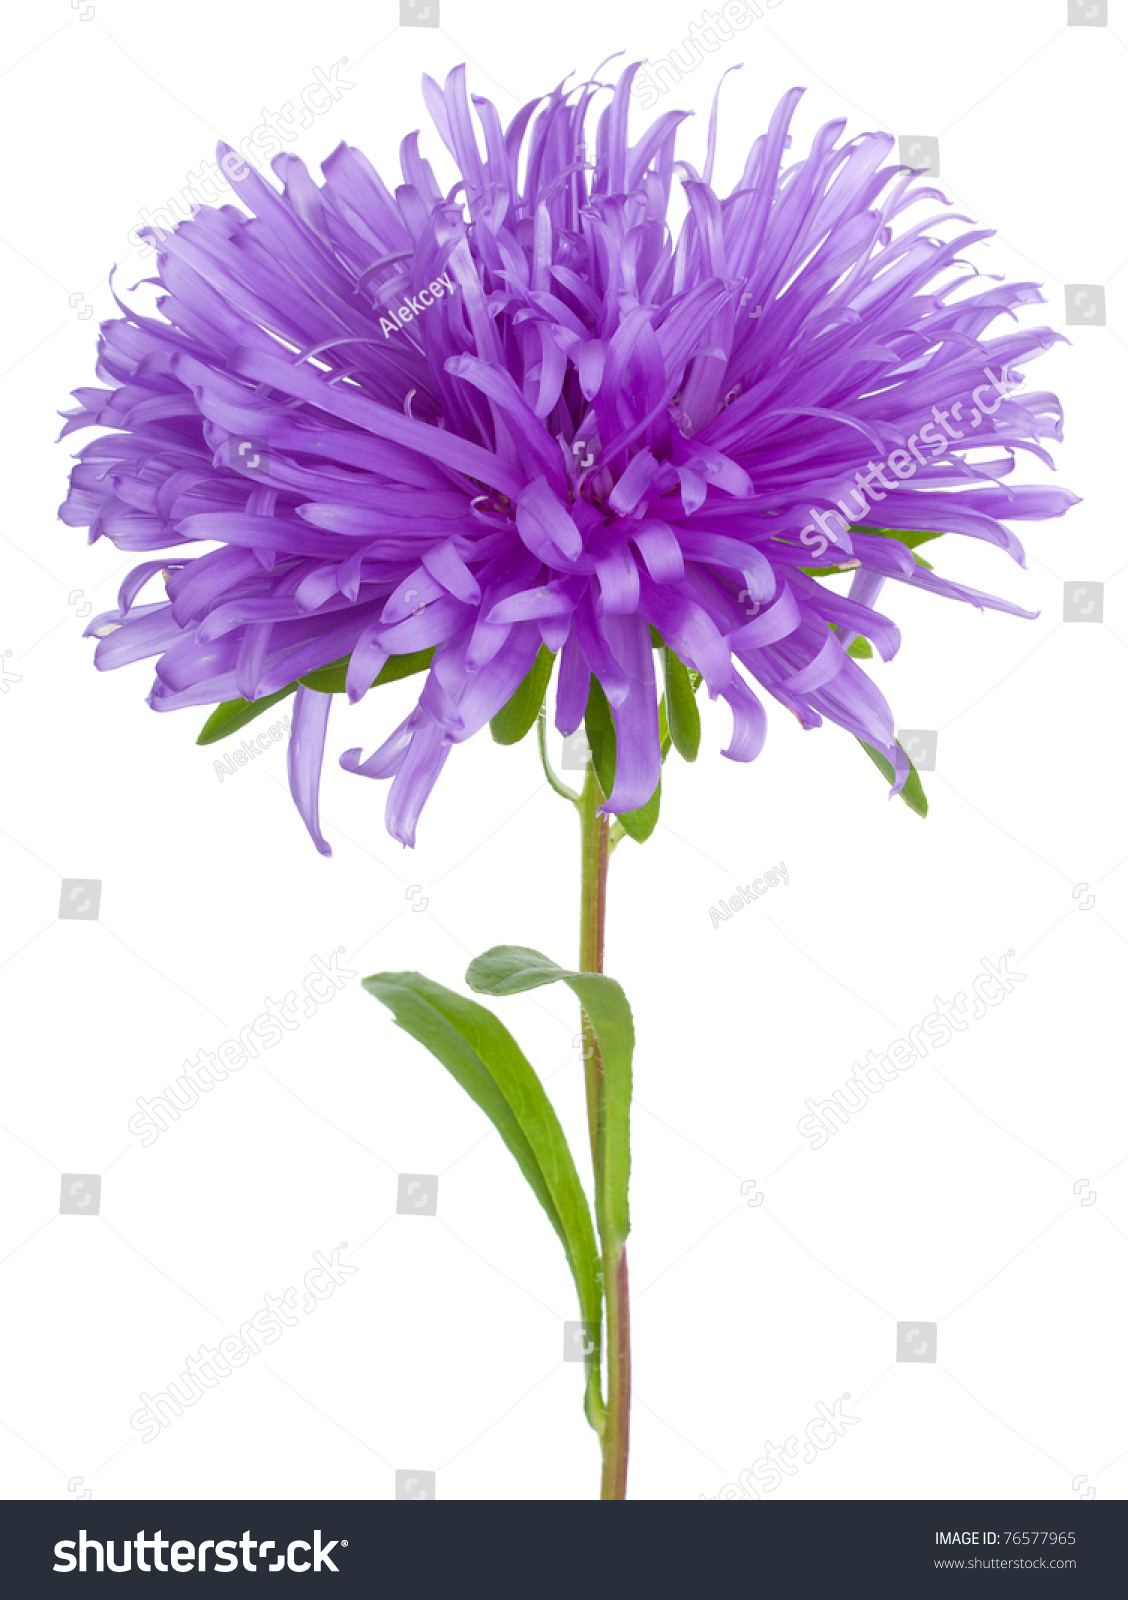 purple aster flower stock photo   shutterstock, Beautiful flower